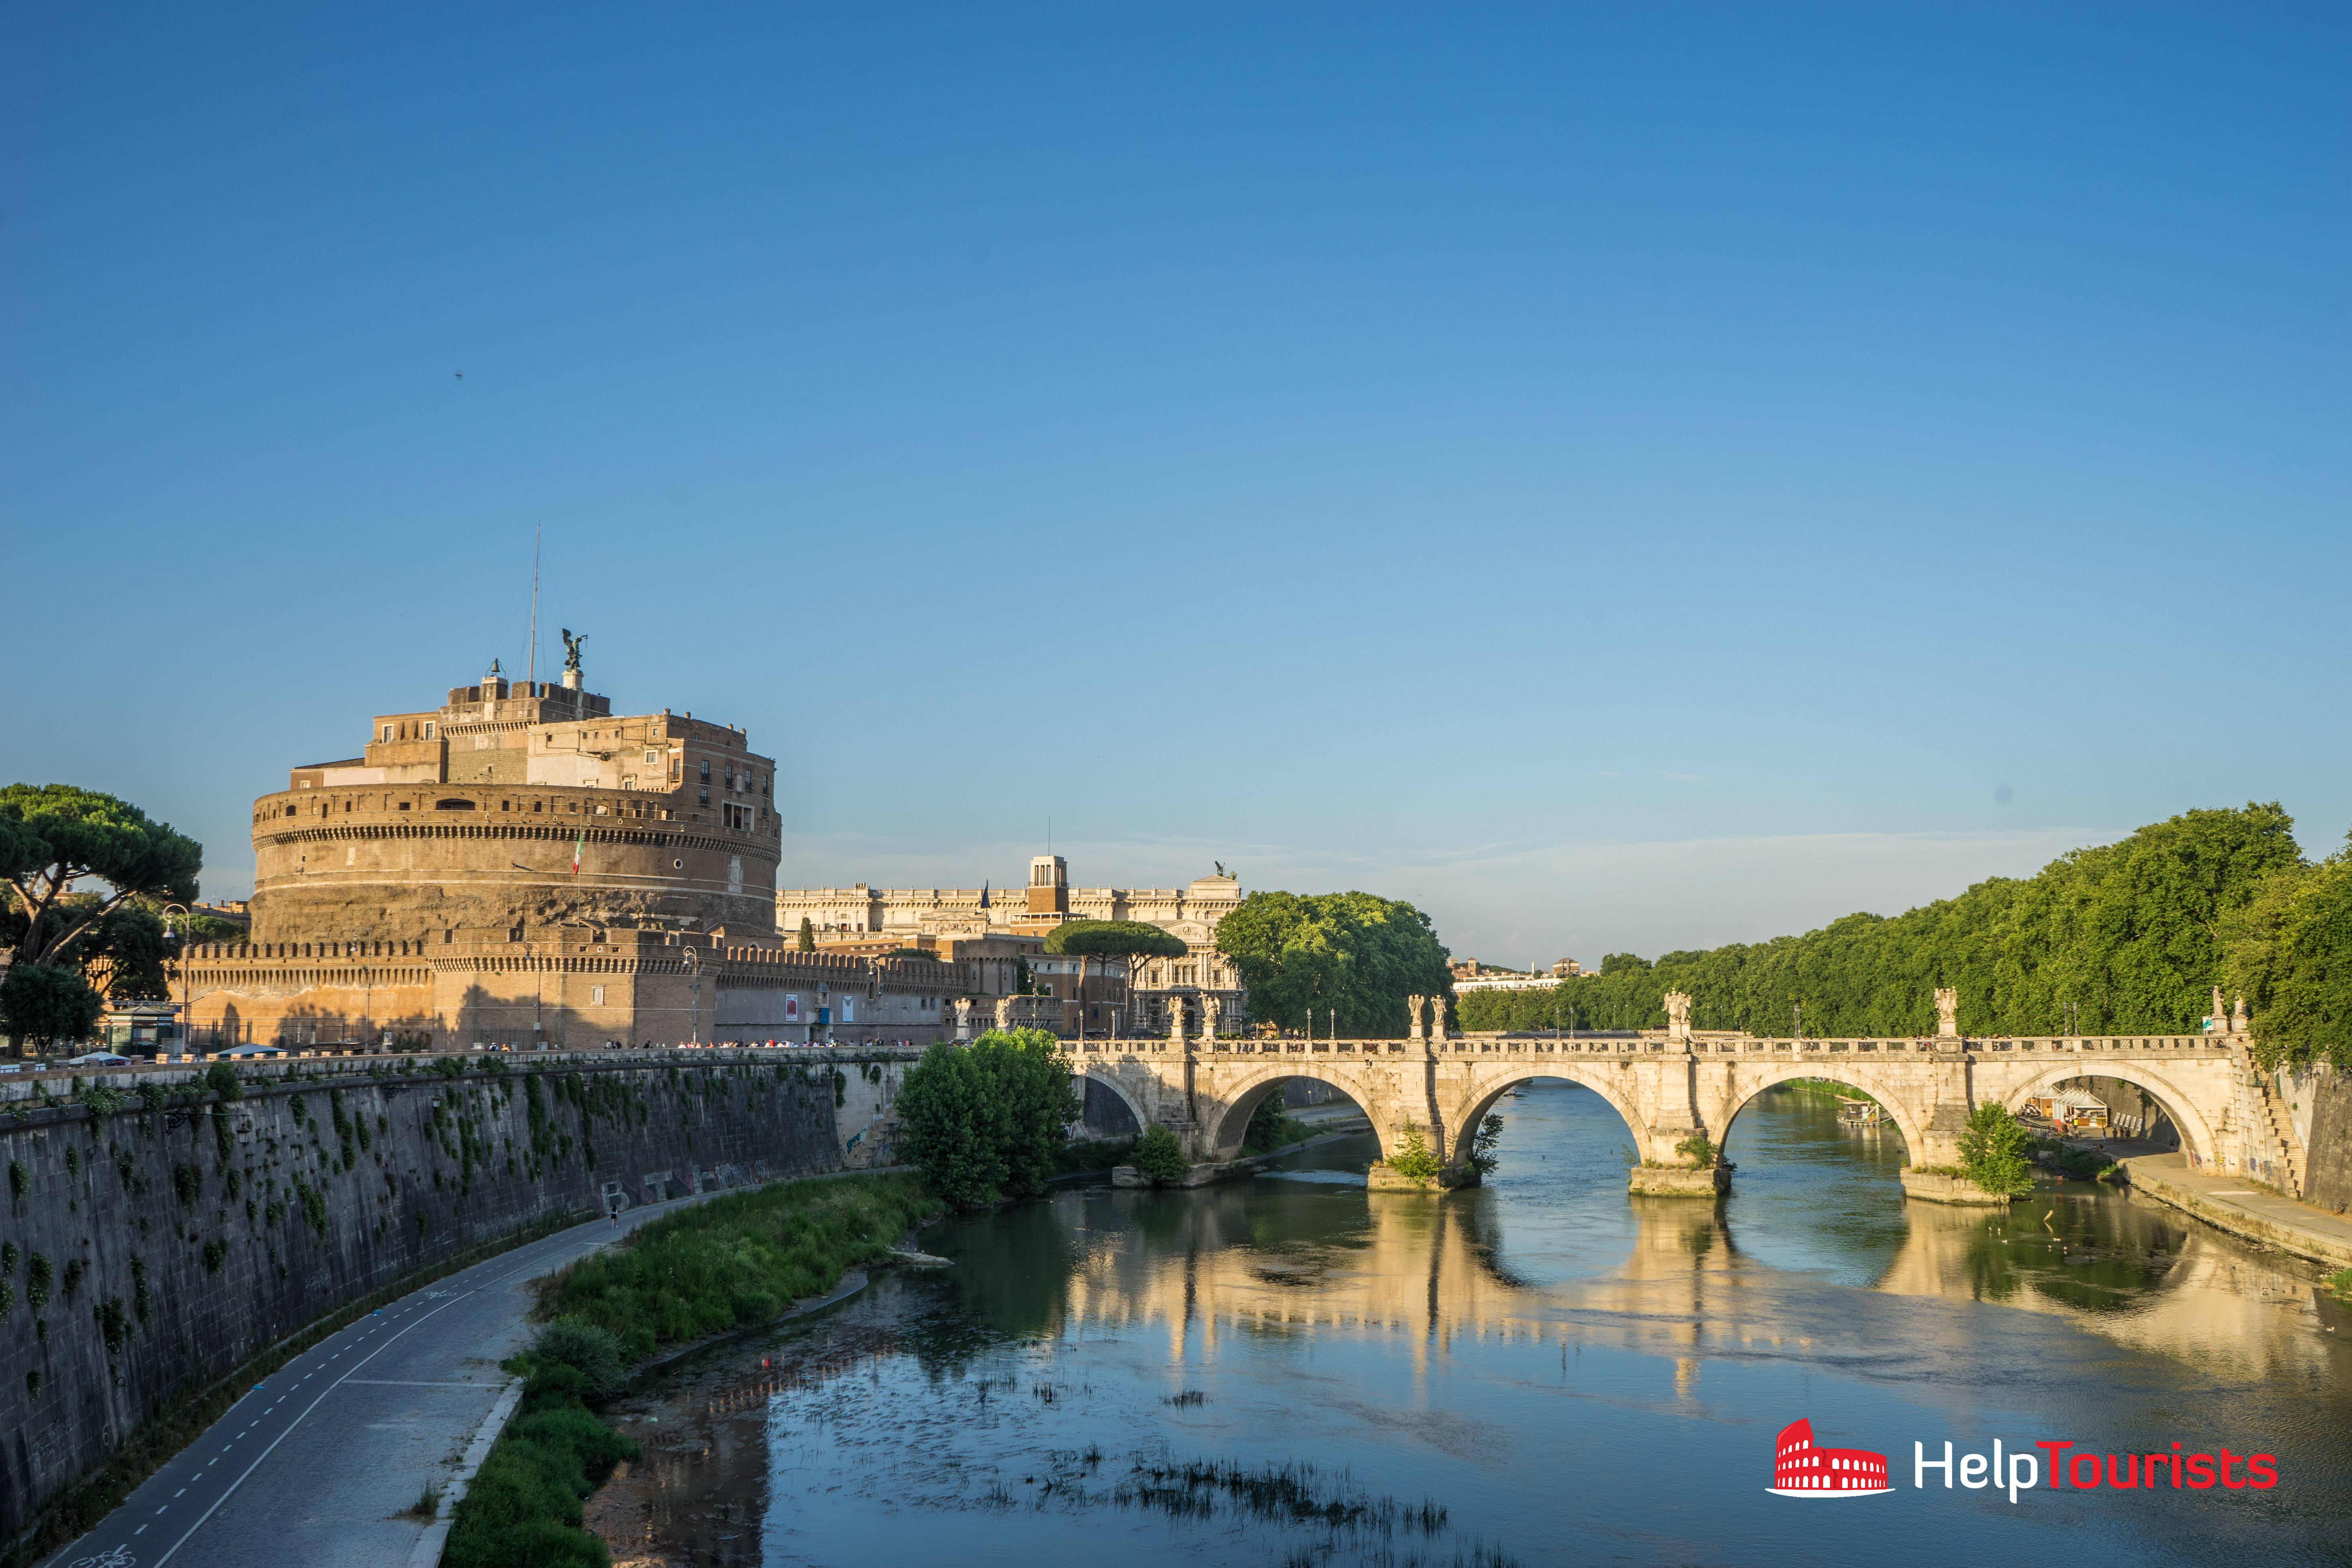 ROME_Saint Angelo's Castle_Totale_02_l